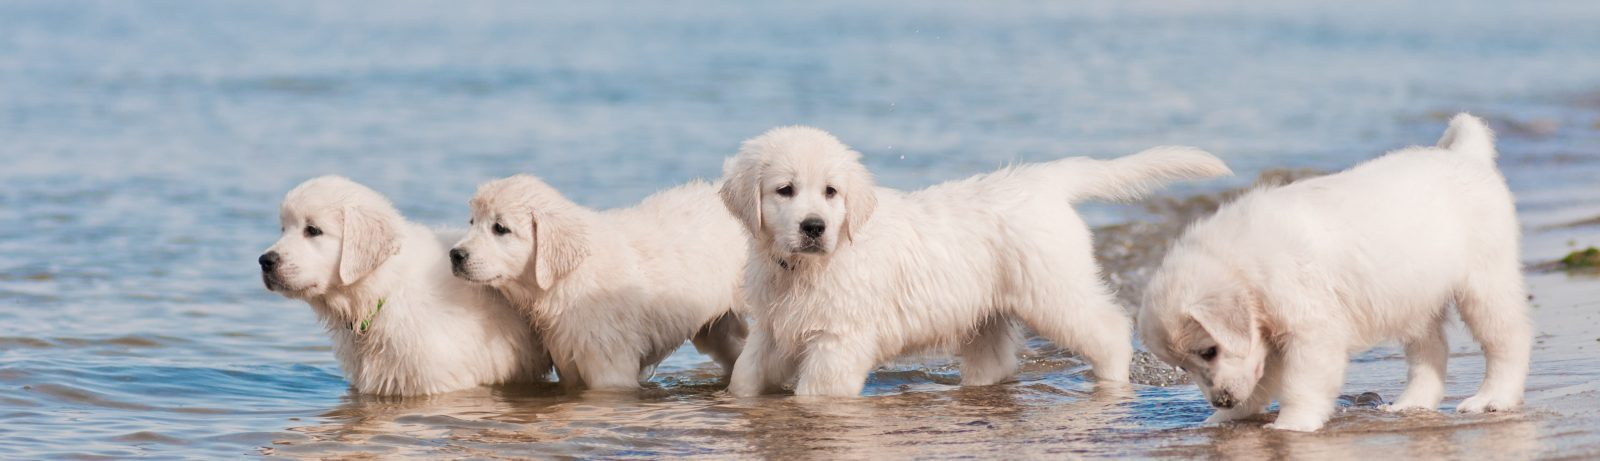 puppies playing on the beach